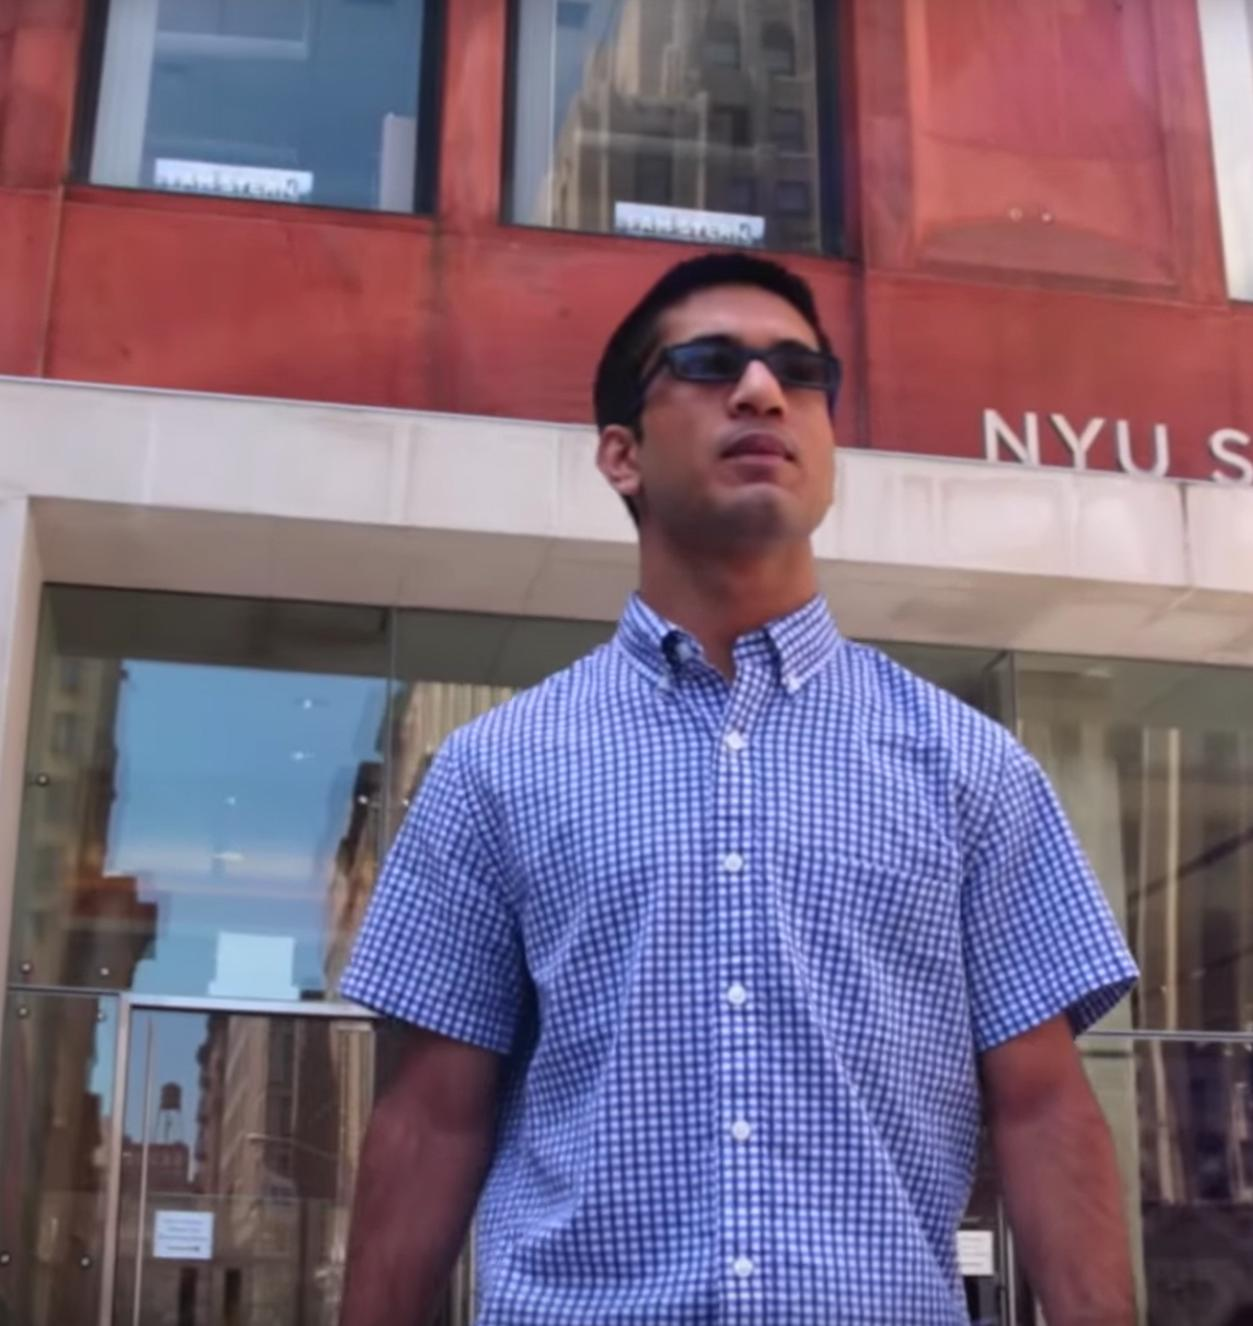 Precollege Summer at Stern Student Abhay on campus